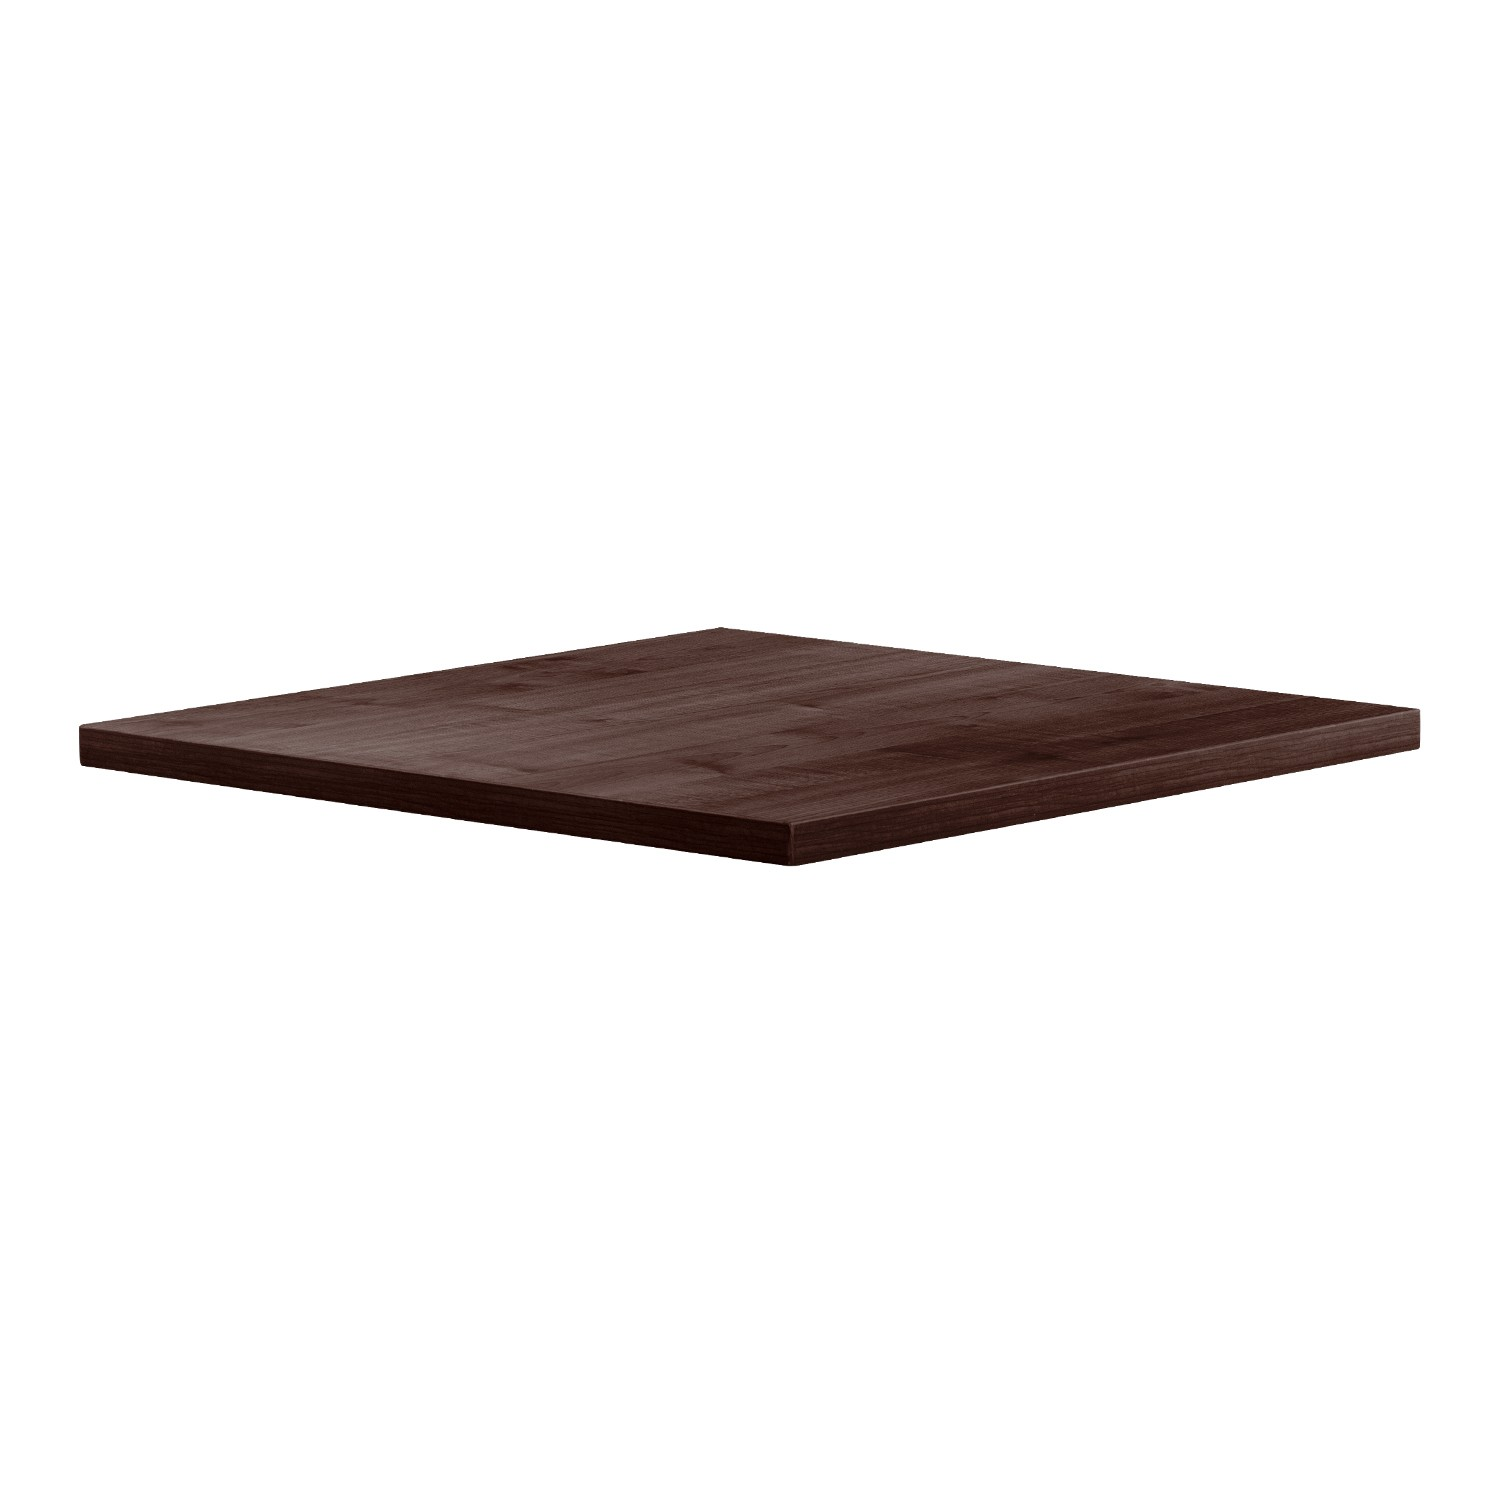 Wooden Neah Table Top, gallery image 1